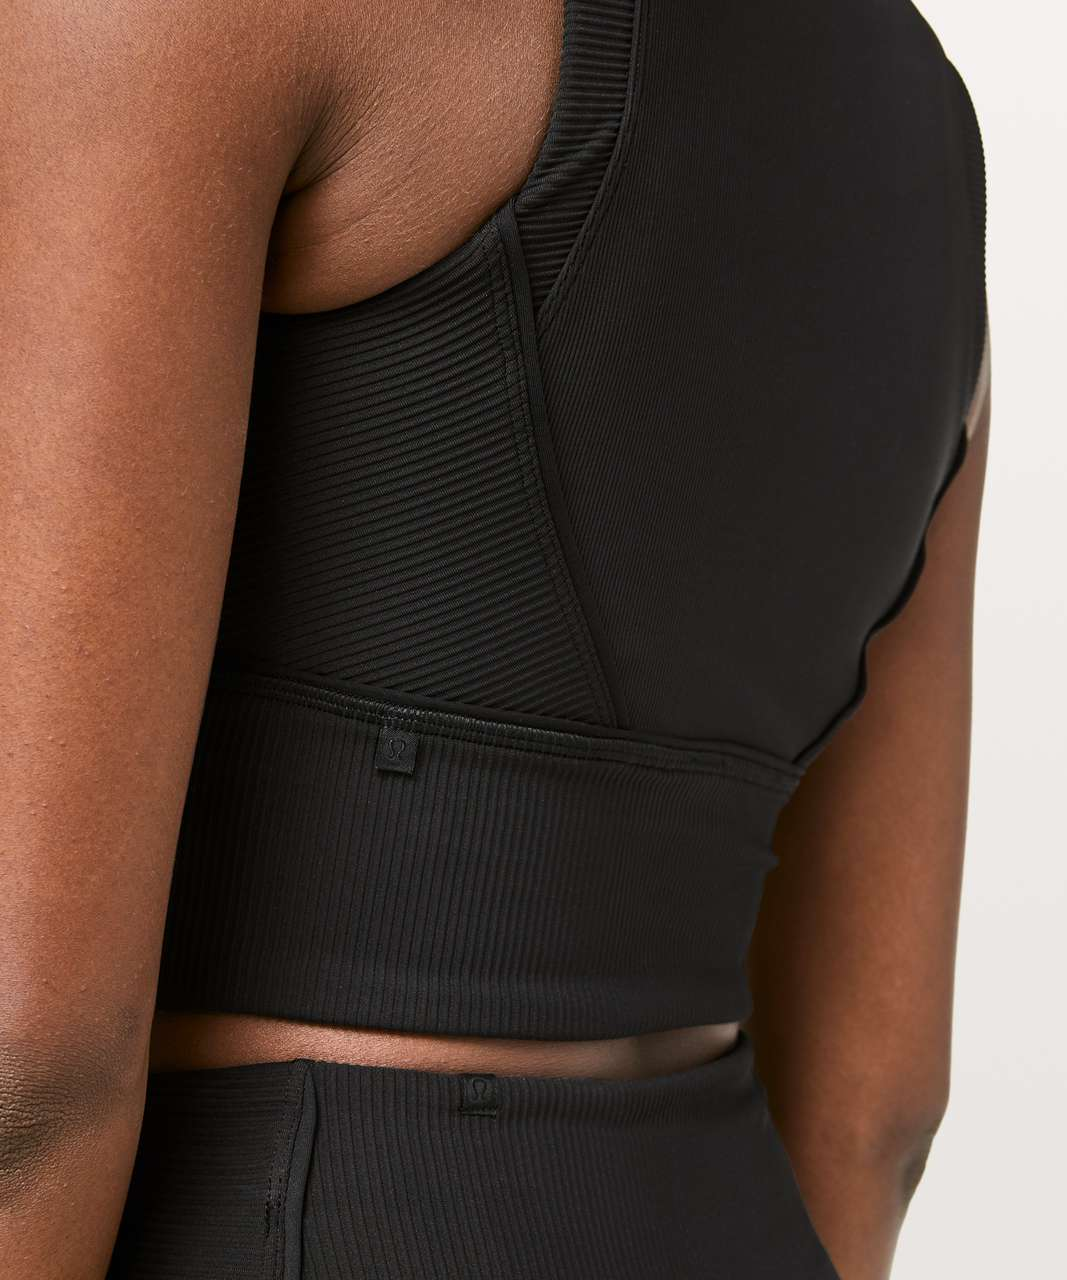 Lululemon Kick Serve Bra Texture - Black